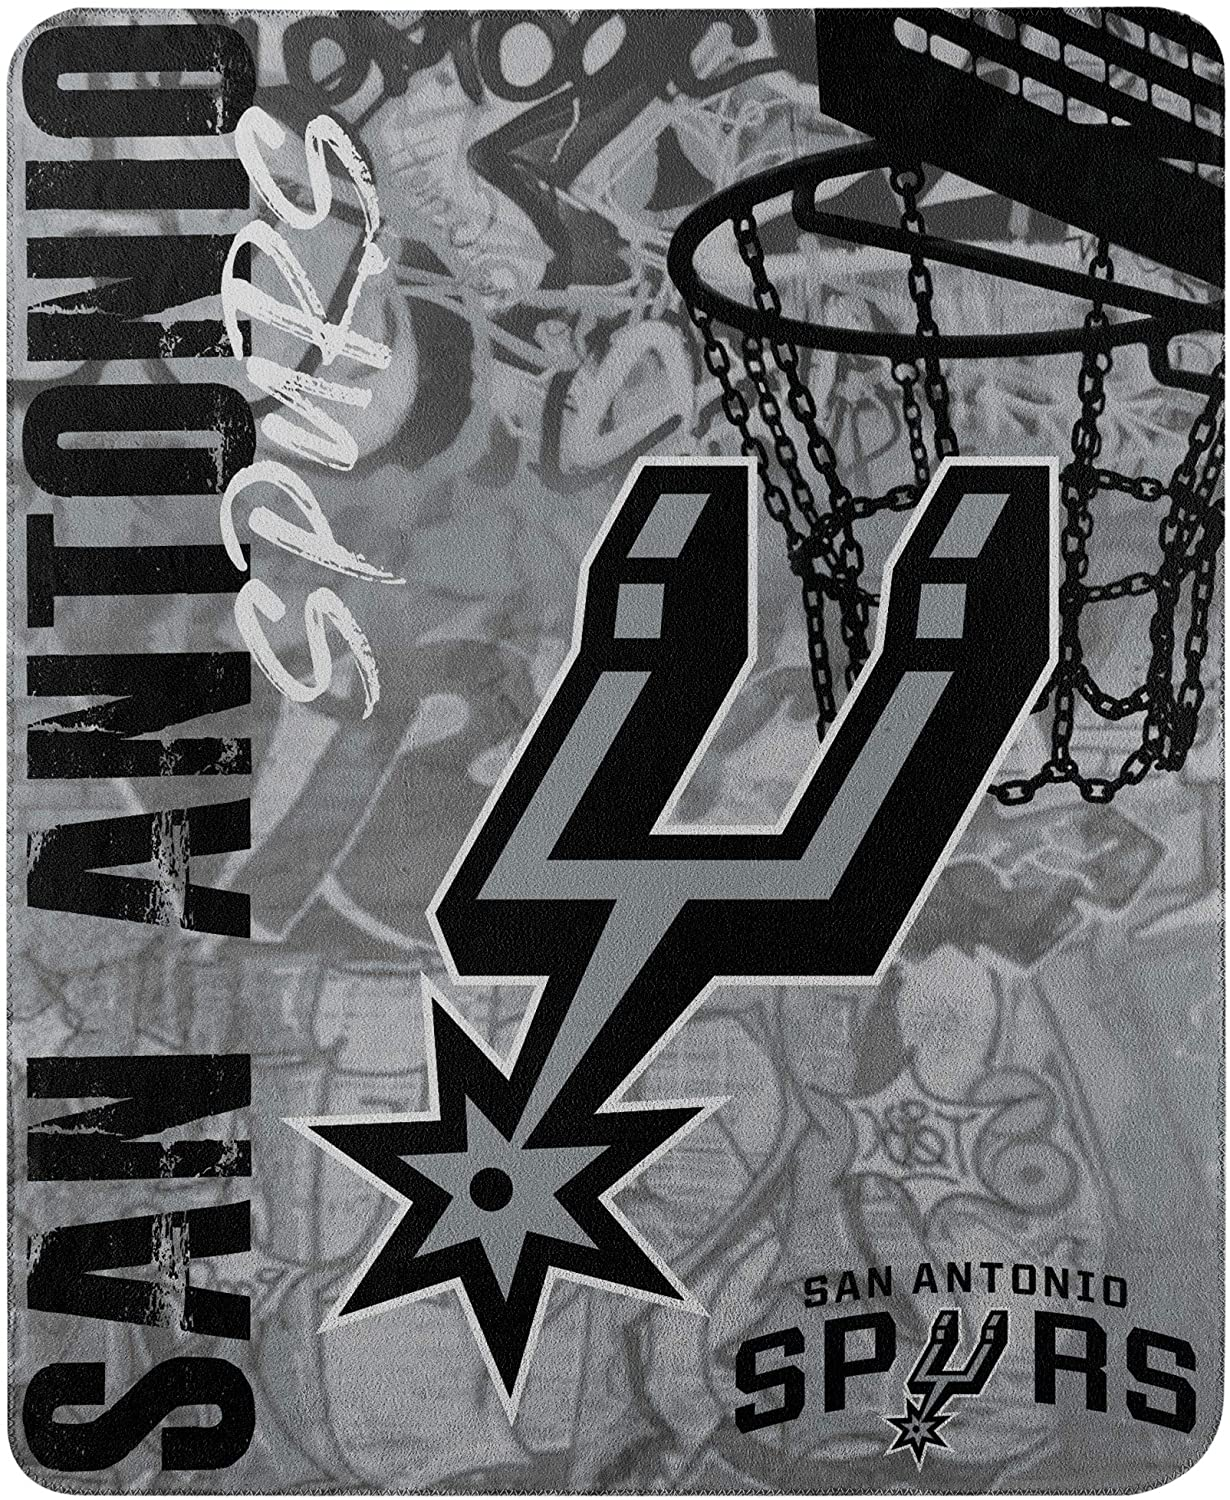 Officially Licensed Nba Throw San Antonio Spurs Fleece Blanket